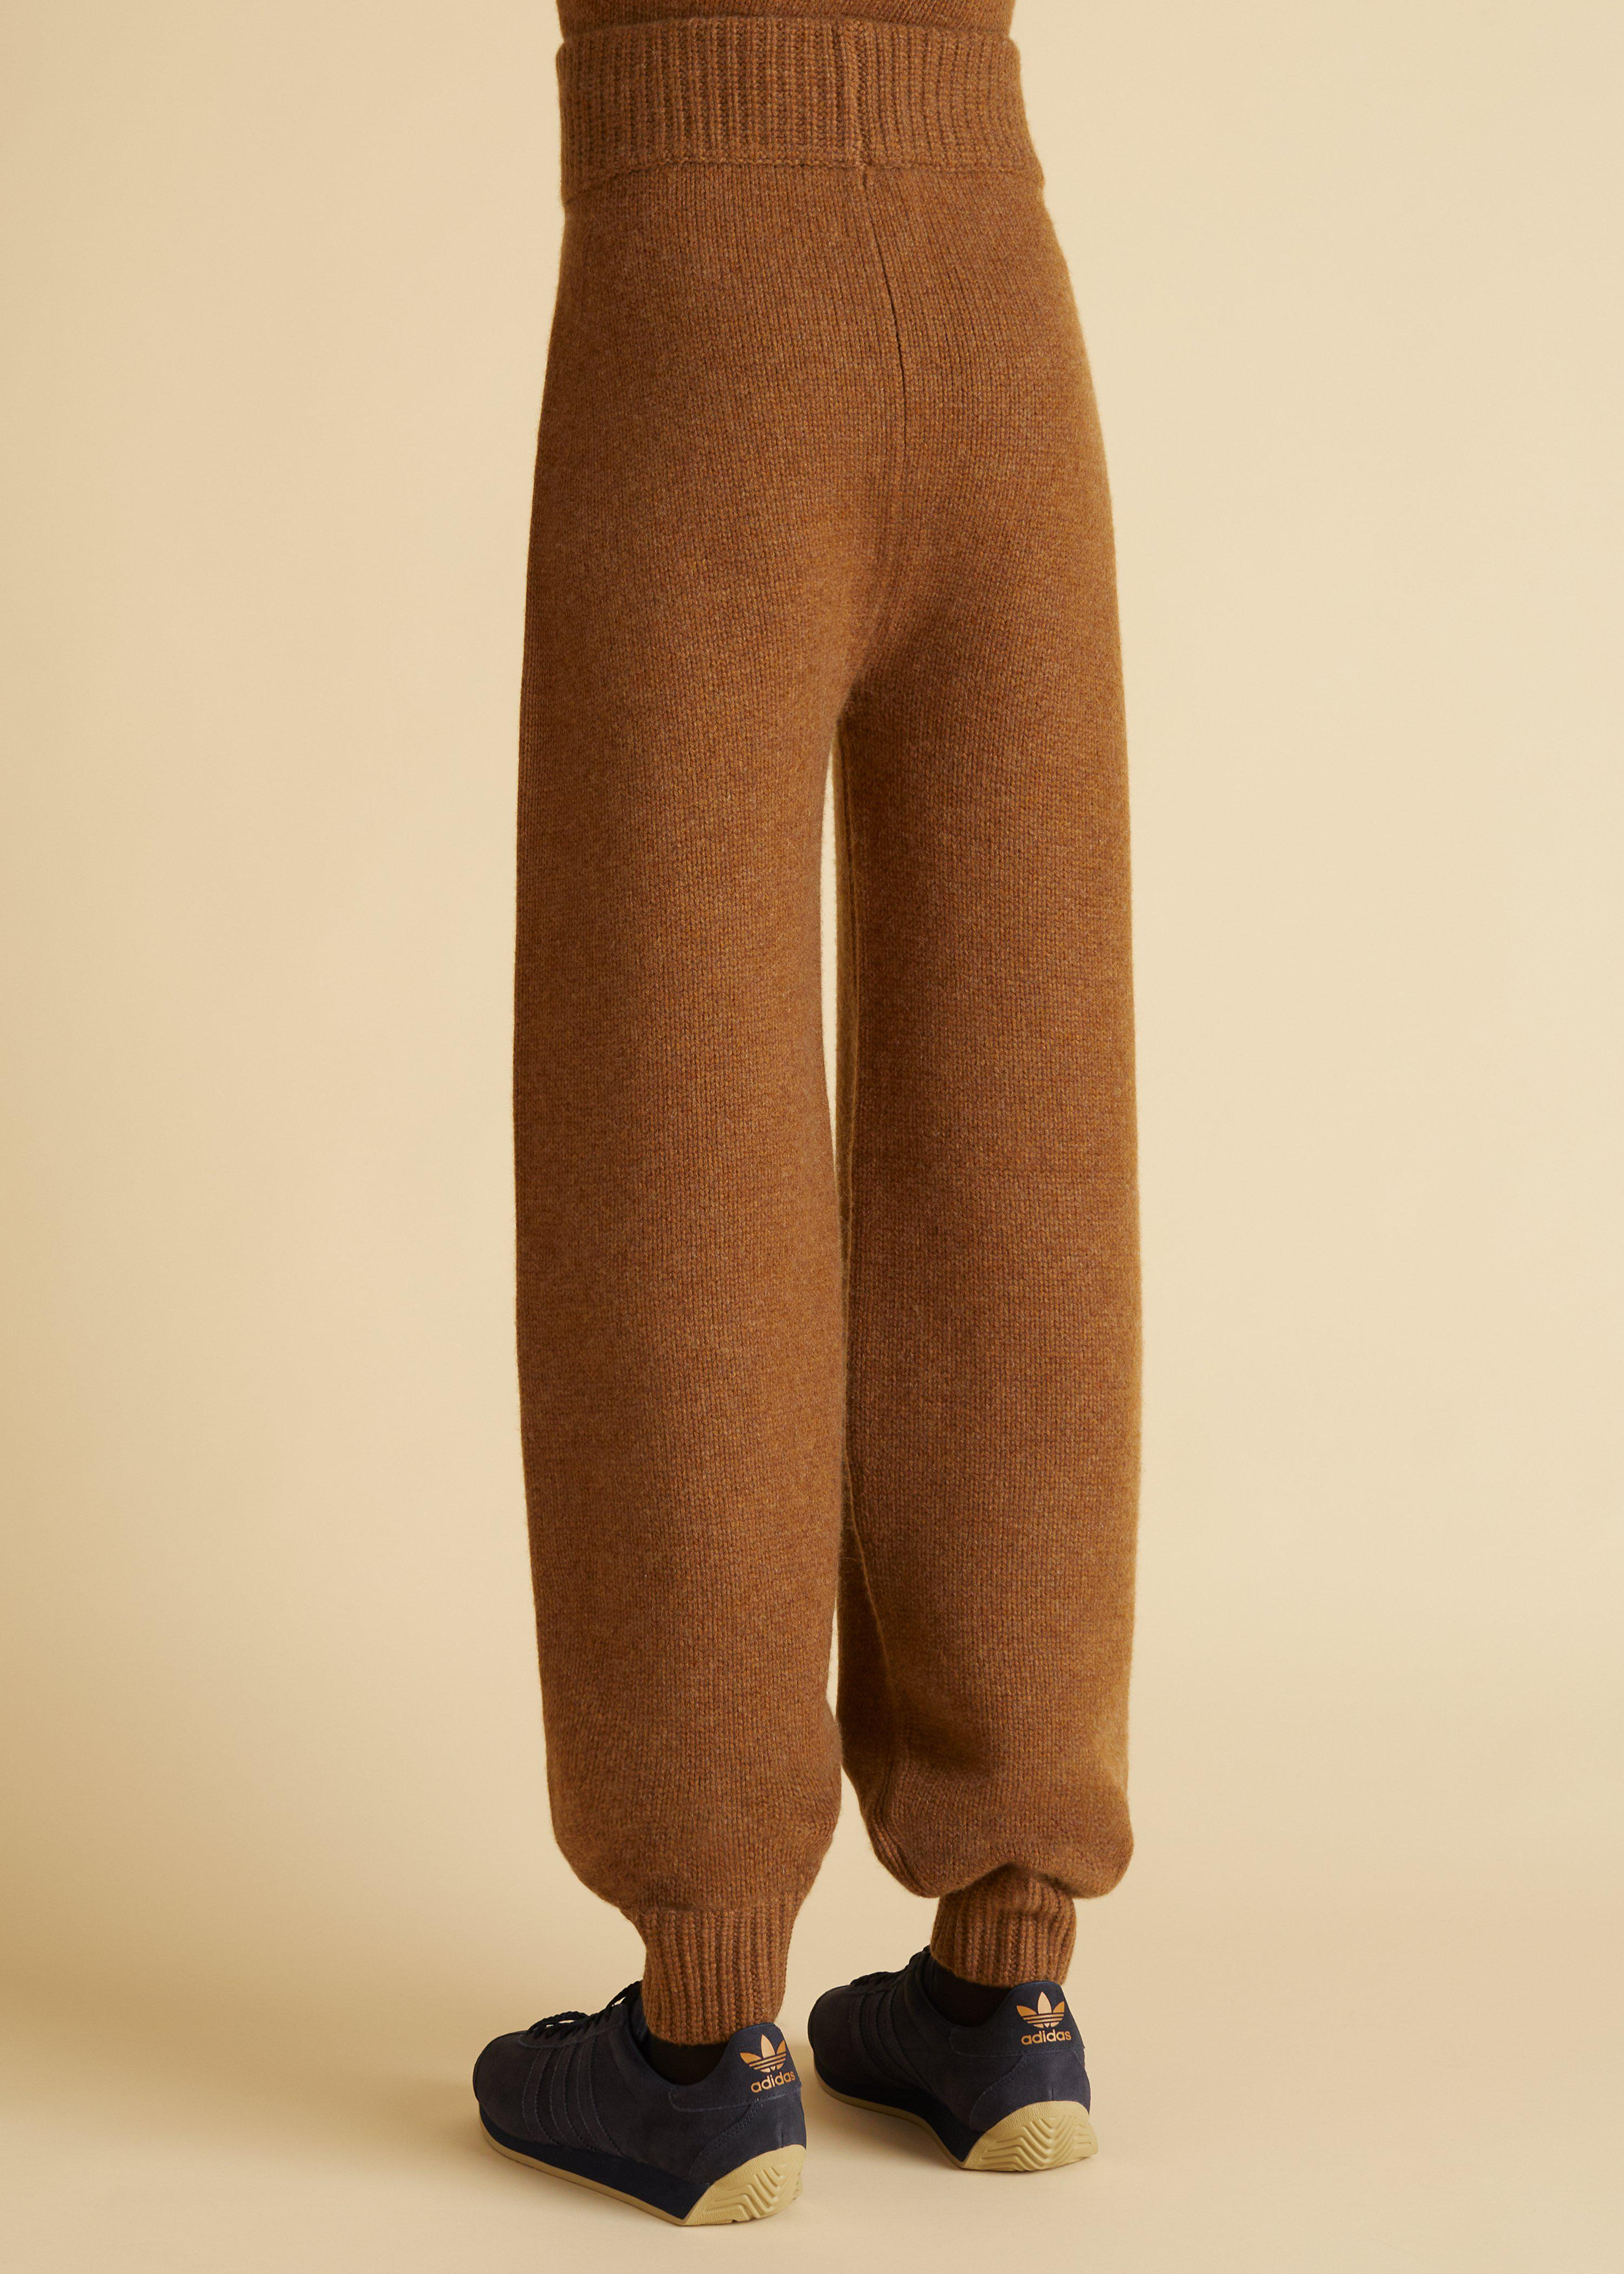 The Joey Pant in Walnut 2